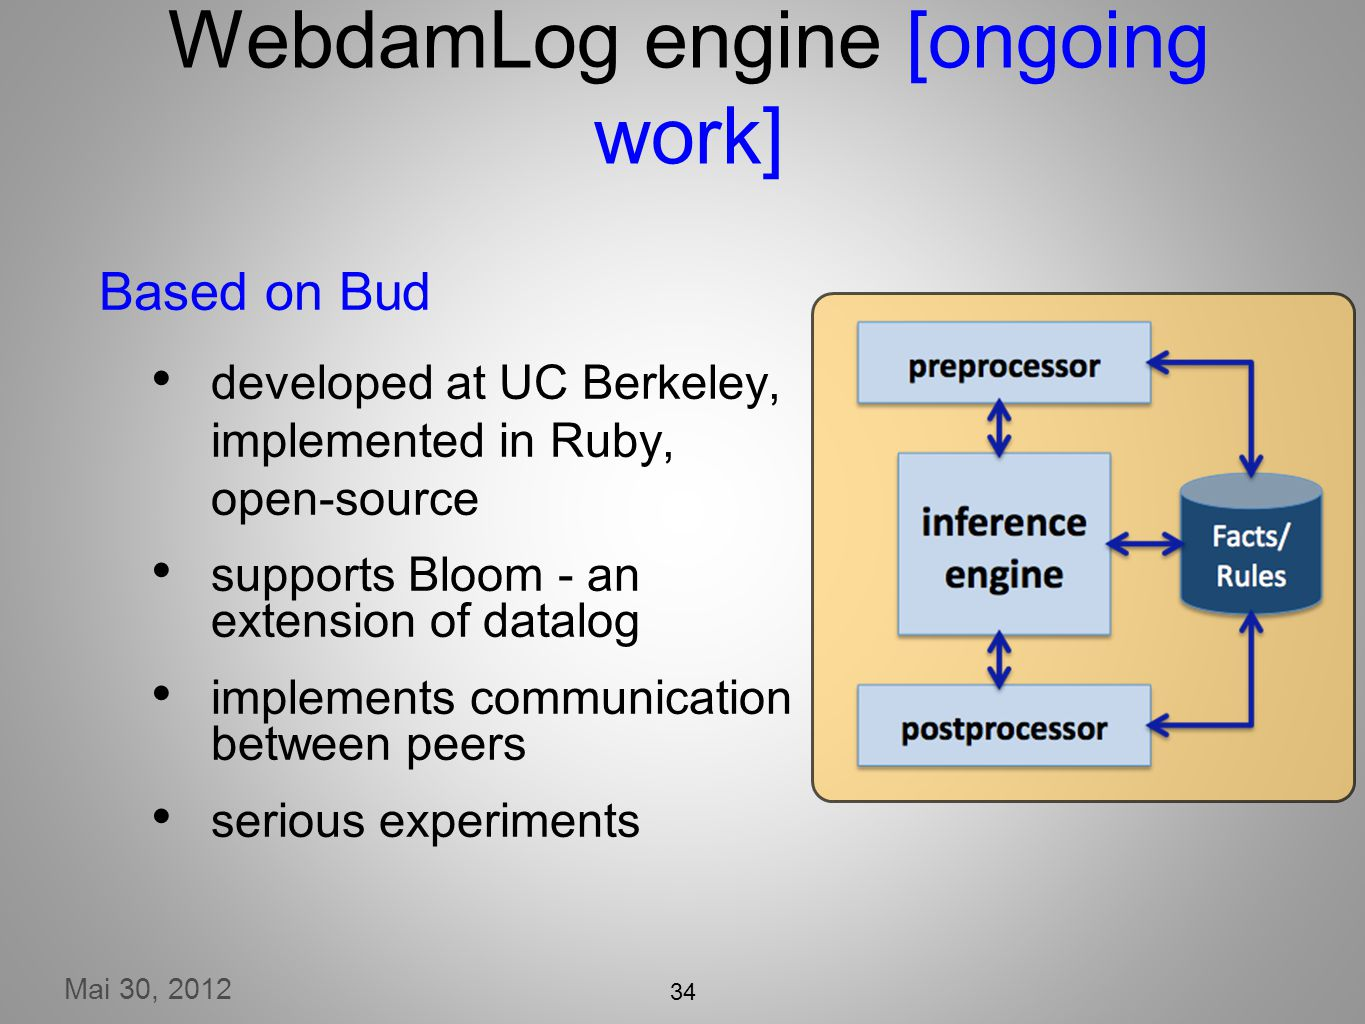 Mai 30, 2012 34 WebdamLog engine [ongoing work] Based on Bud developed at UC Berkeley, implemented in Ruby, open-source supports Bloom - an extension of datalog implements communication between peers serious experiments